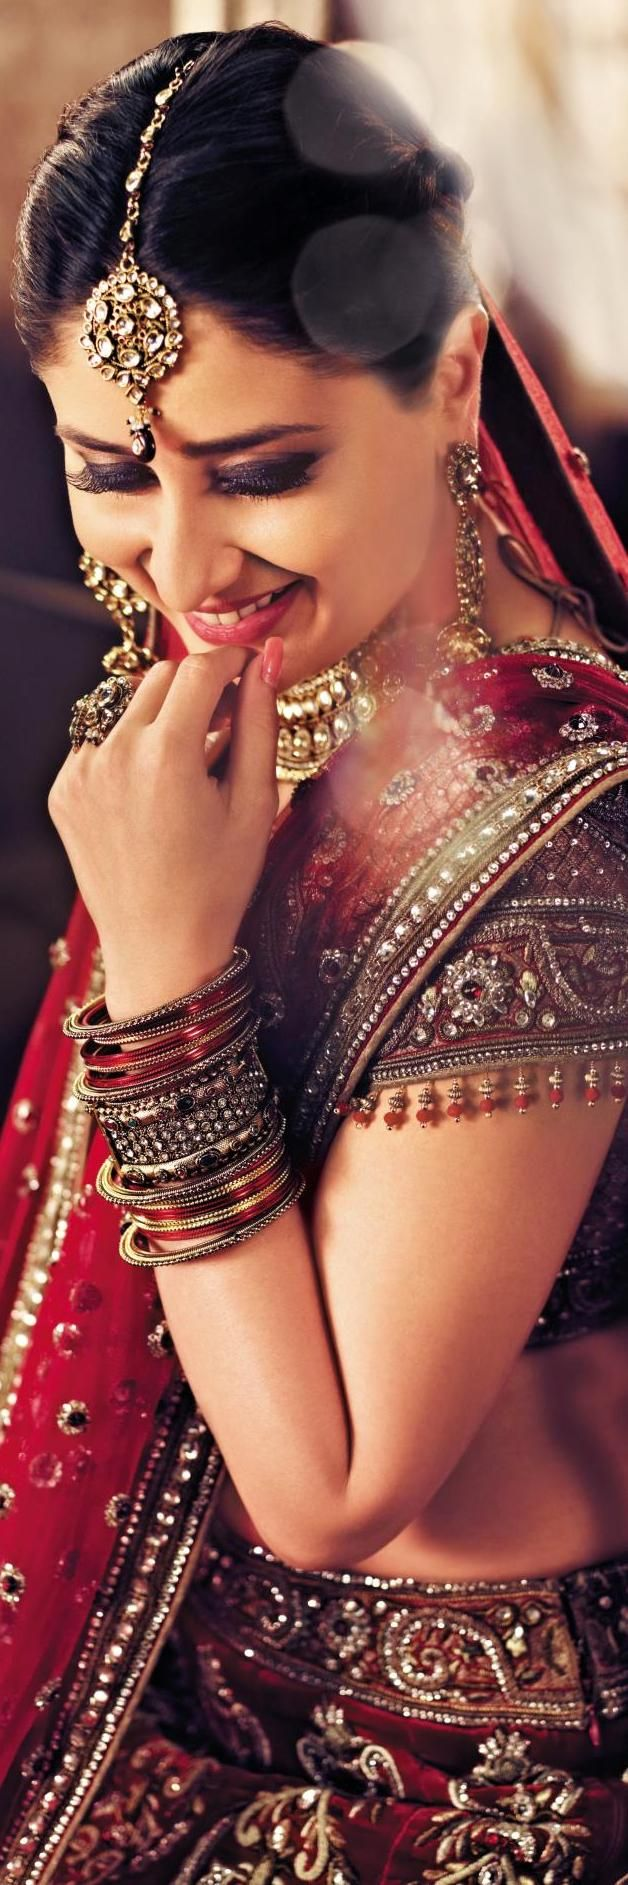 Kareena Kapoor, Bebo in beautiful Indian outfit #wedding